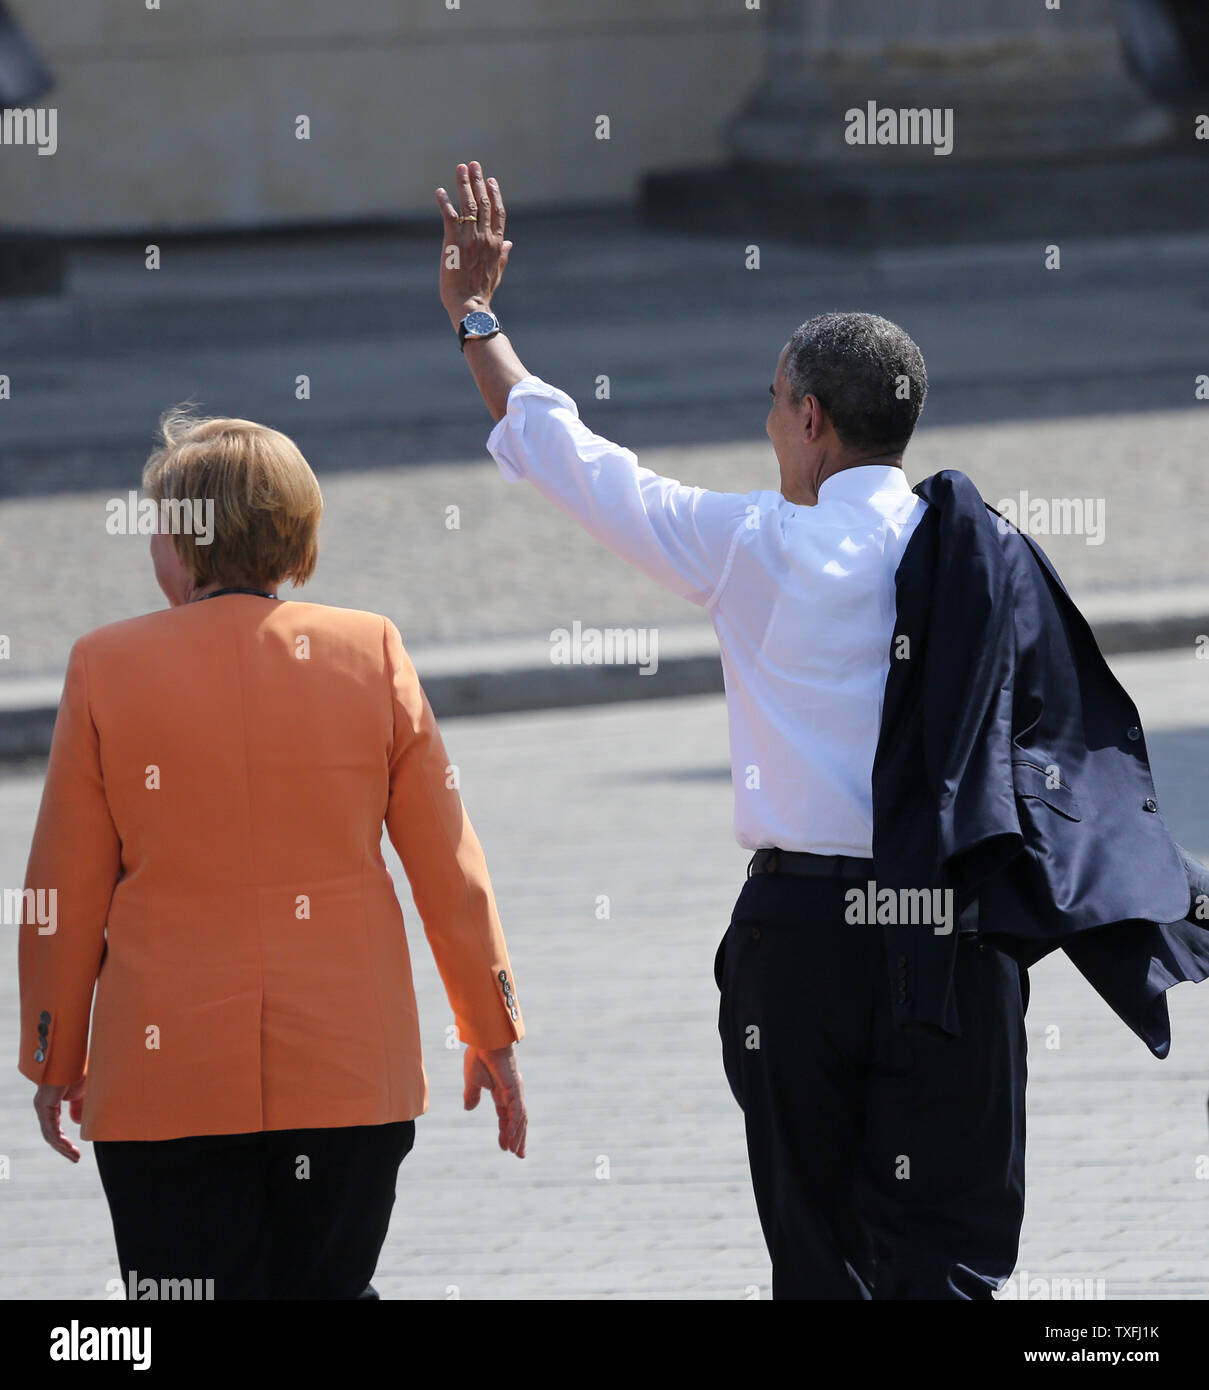 """U.S. President Barack Obama (R) and German Chancellor Angela Merkel leave the Brandenburg Gate after giving a speech at the historic site in Berlin on June 19, 2013.  Obama is in Berlin on his first official state visit to Germany and spoke at the same place where fifty years earlier U.S. President John F. Kennedy delivered his famous """"Ich bin ein Berliner (I am a Berliner)"""" address .   UPI/David Silpa Stock Photo"""